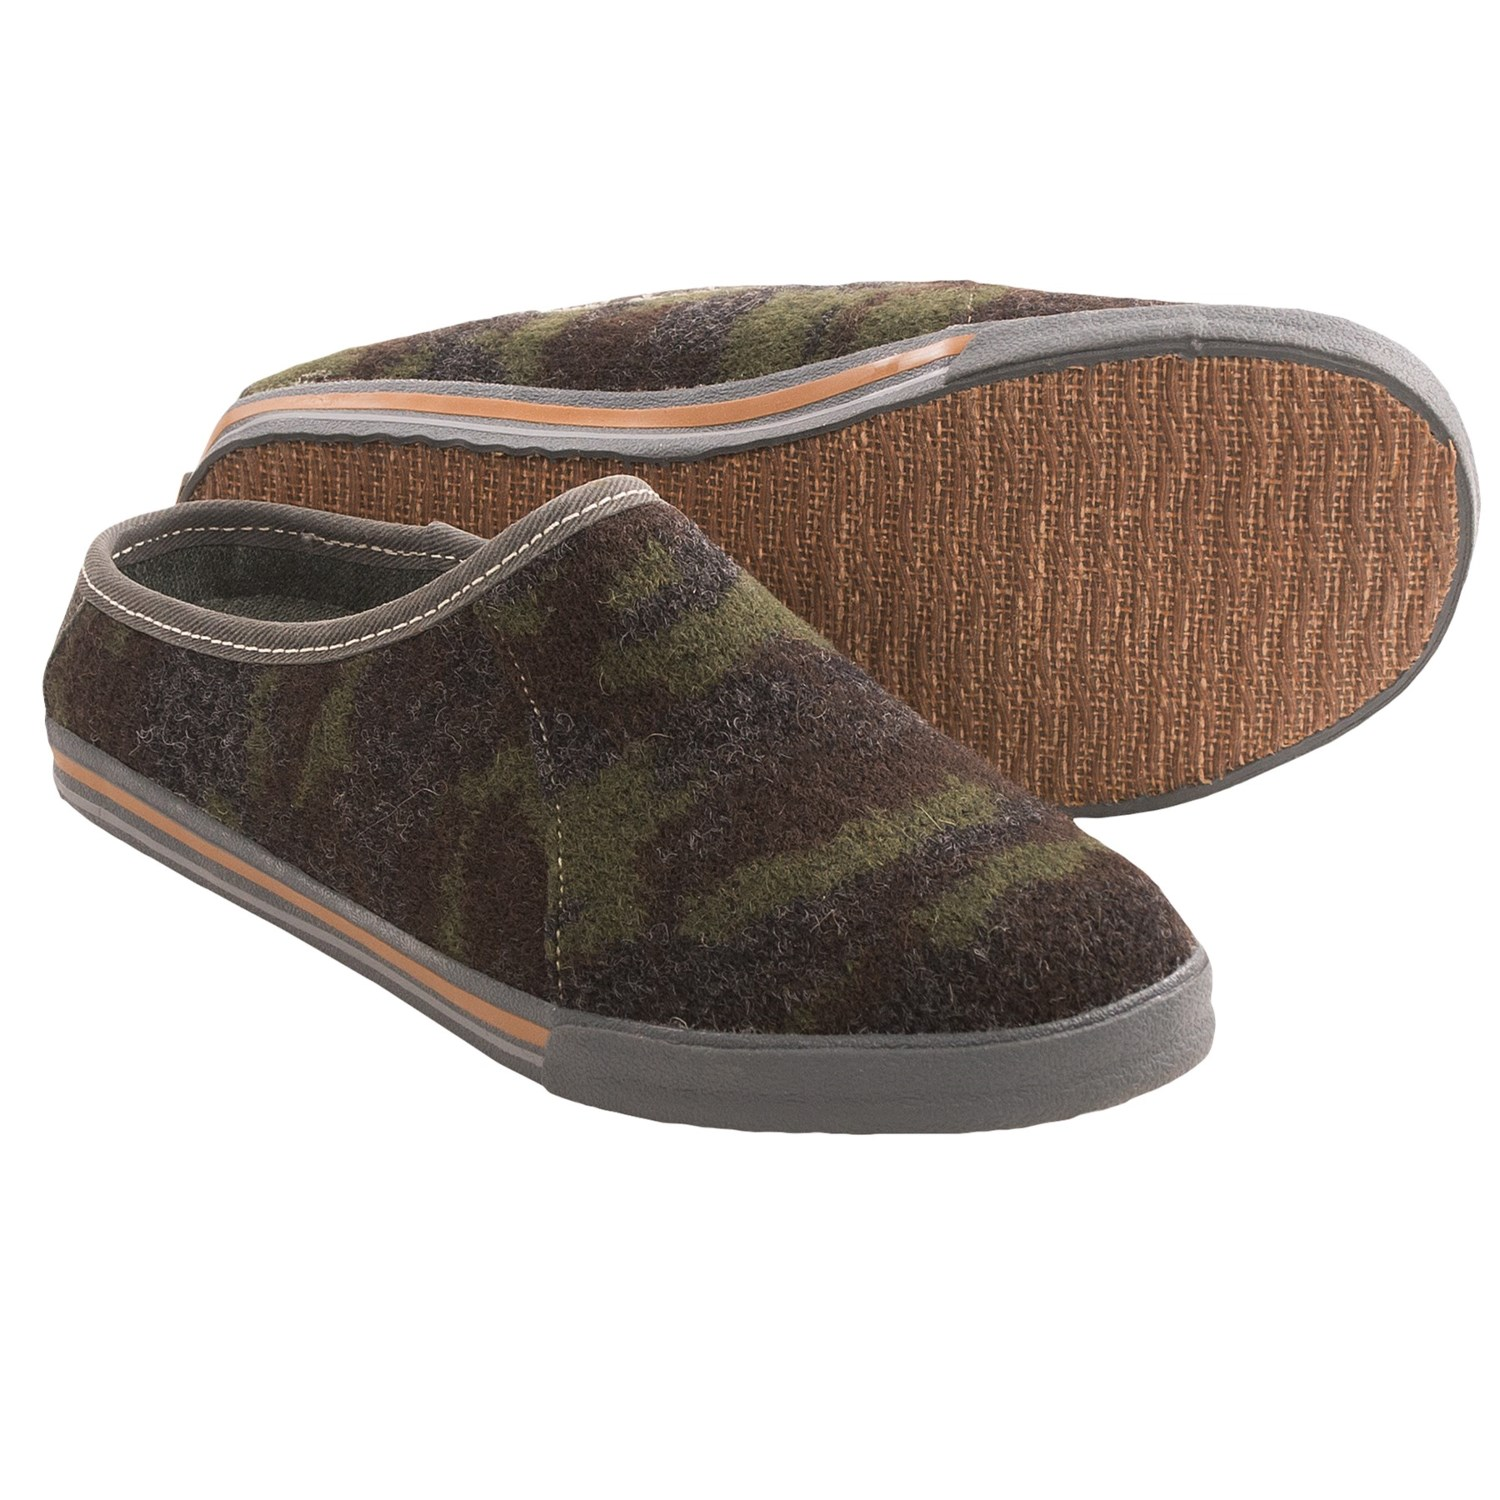 mens camo house slippers - 28 images - mens camo slippers ...